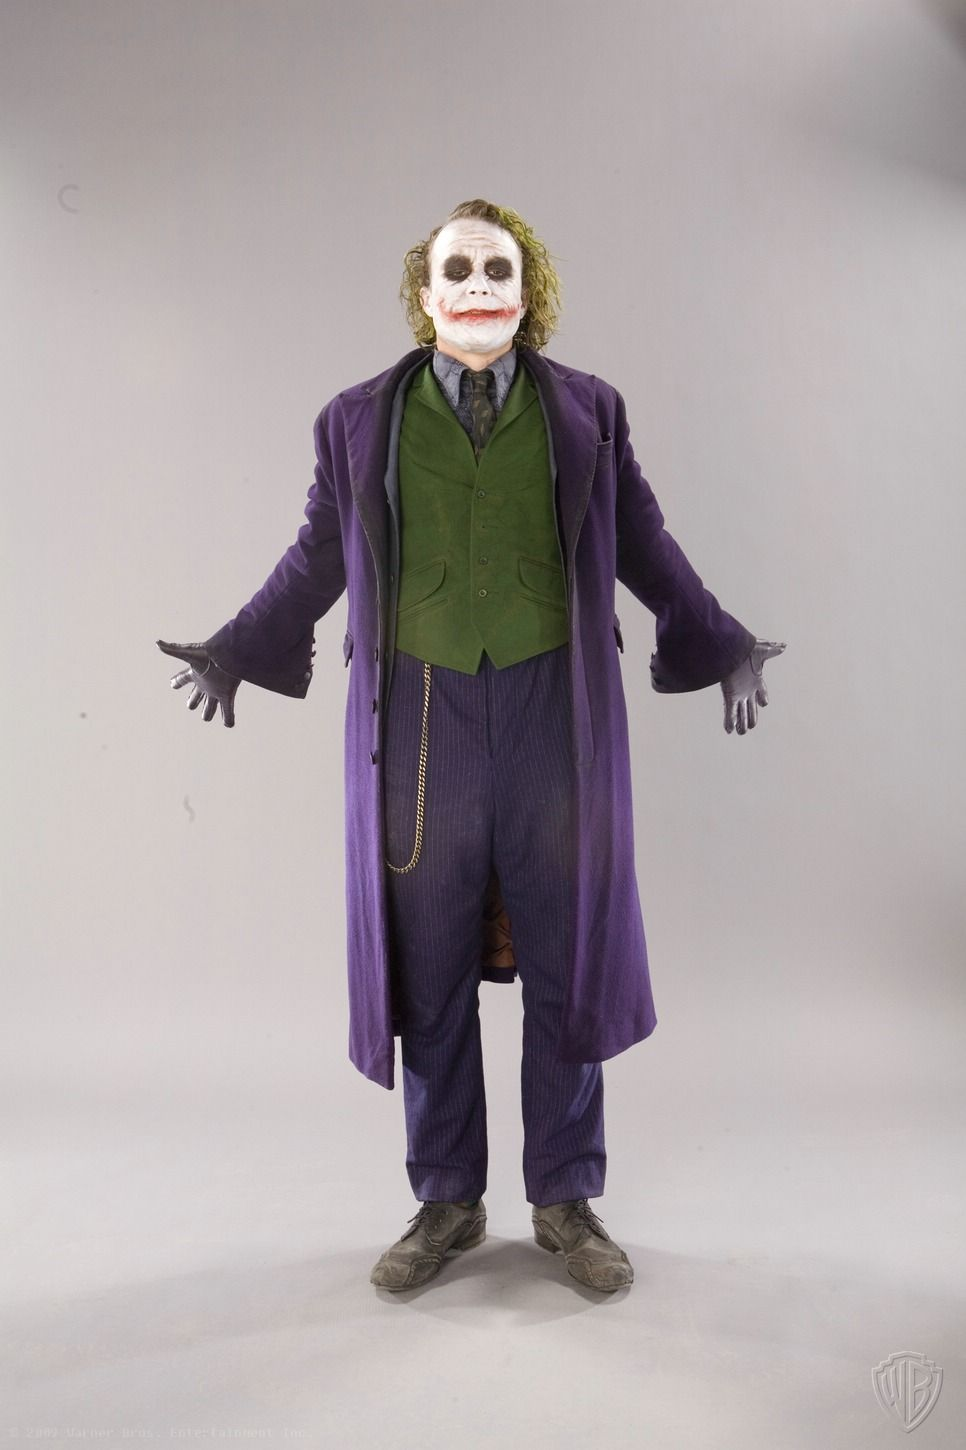 Astounding Collection Of Lost Dark Knight Promo Images Show